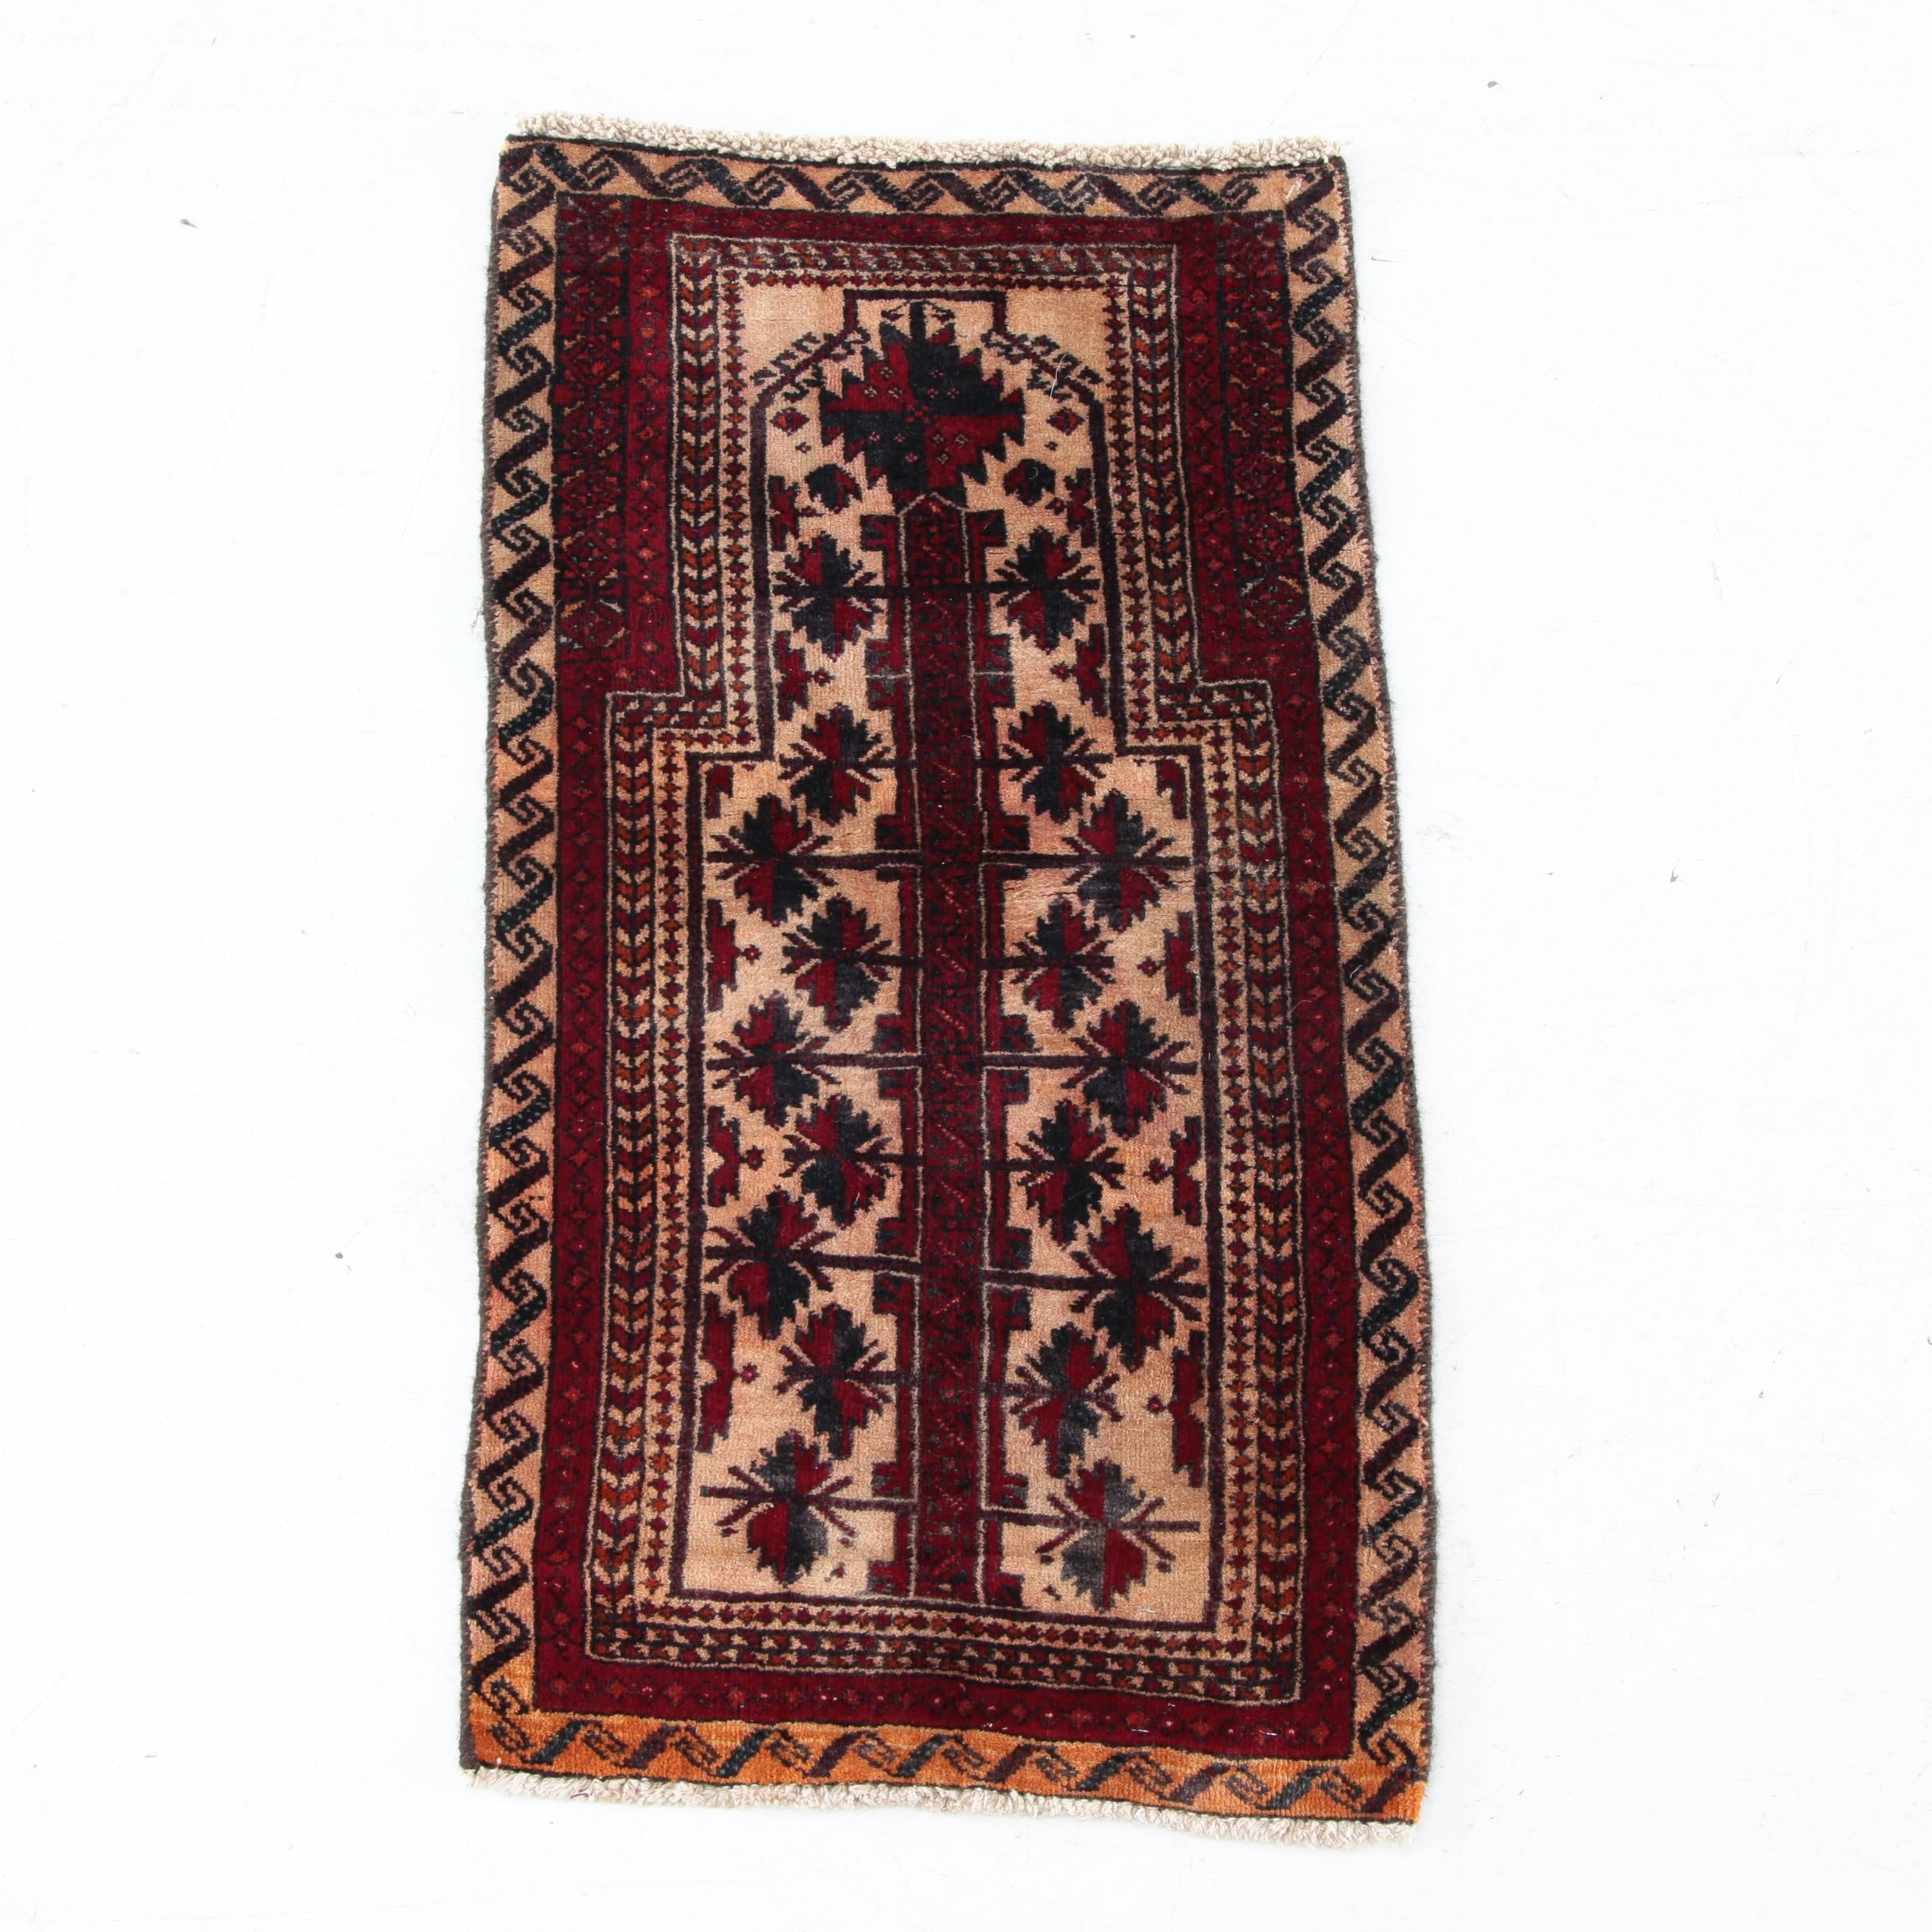 Vintage Hand-Knotted Baluch Wool Prayer Rug